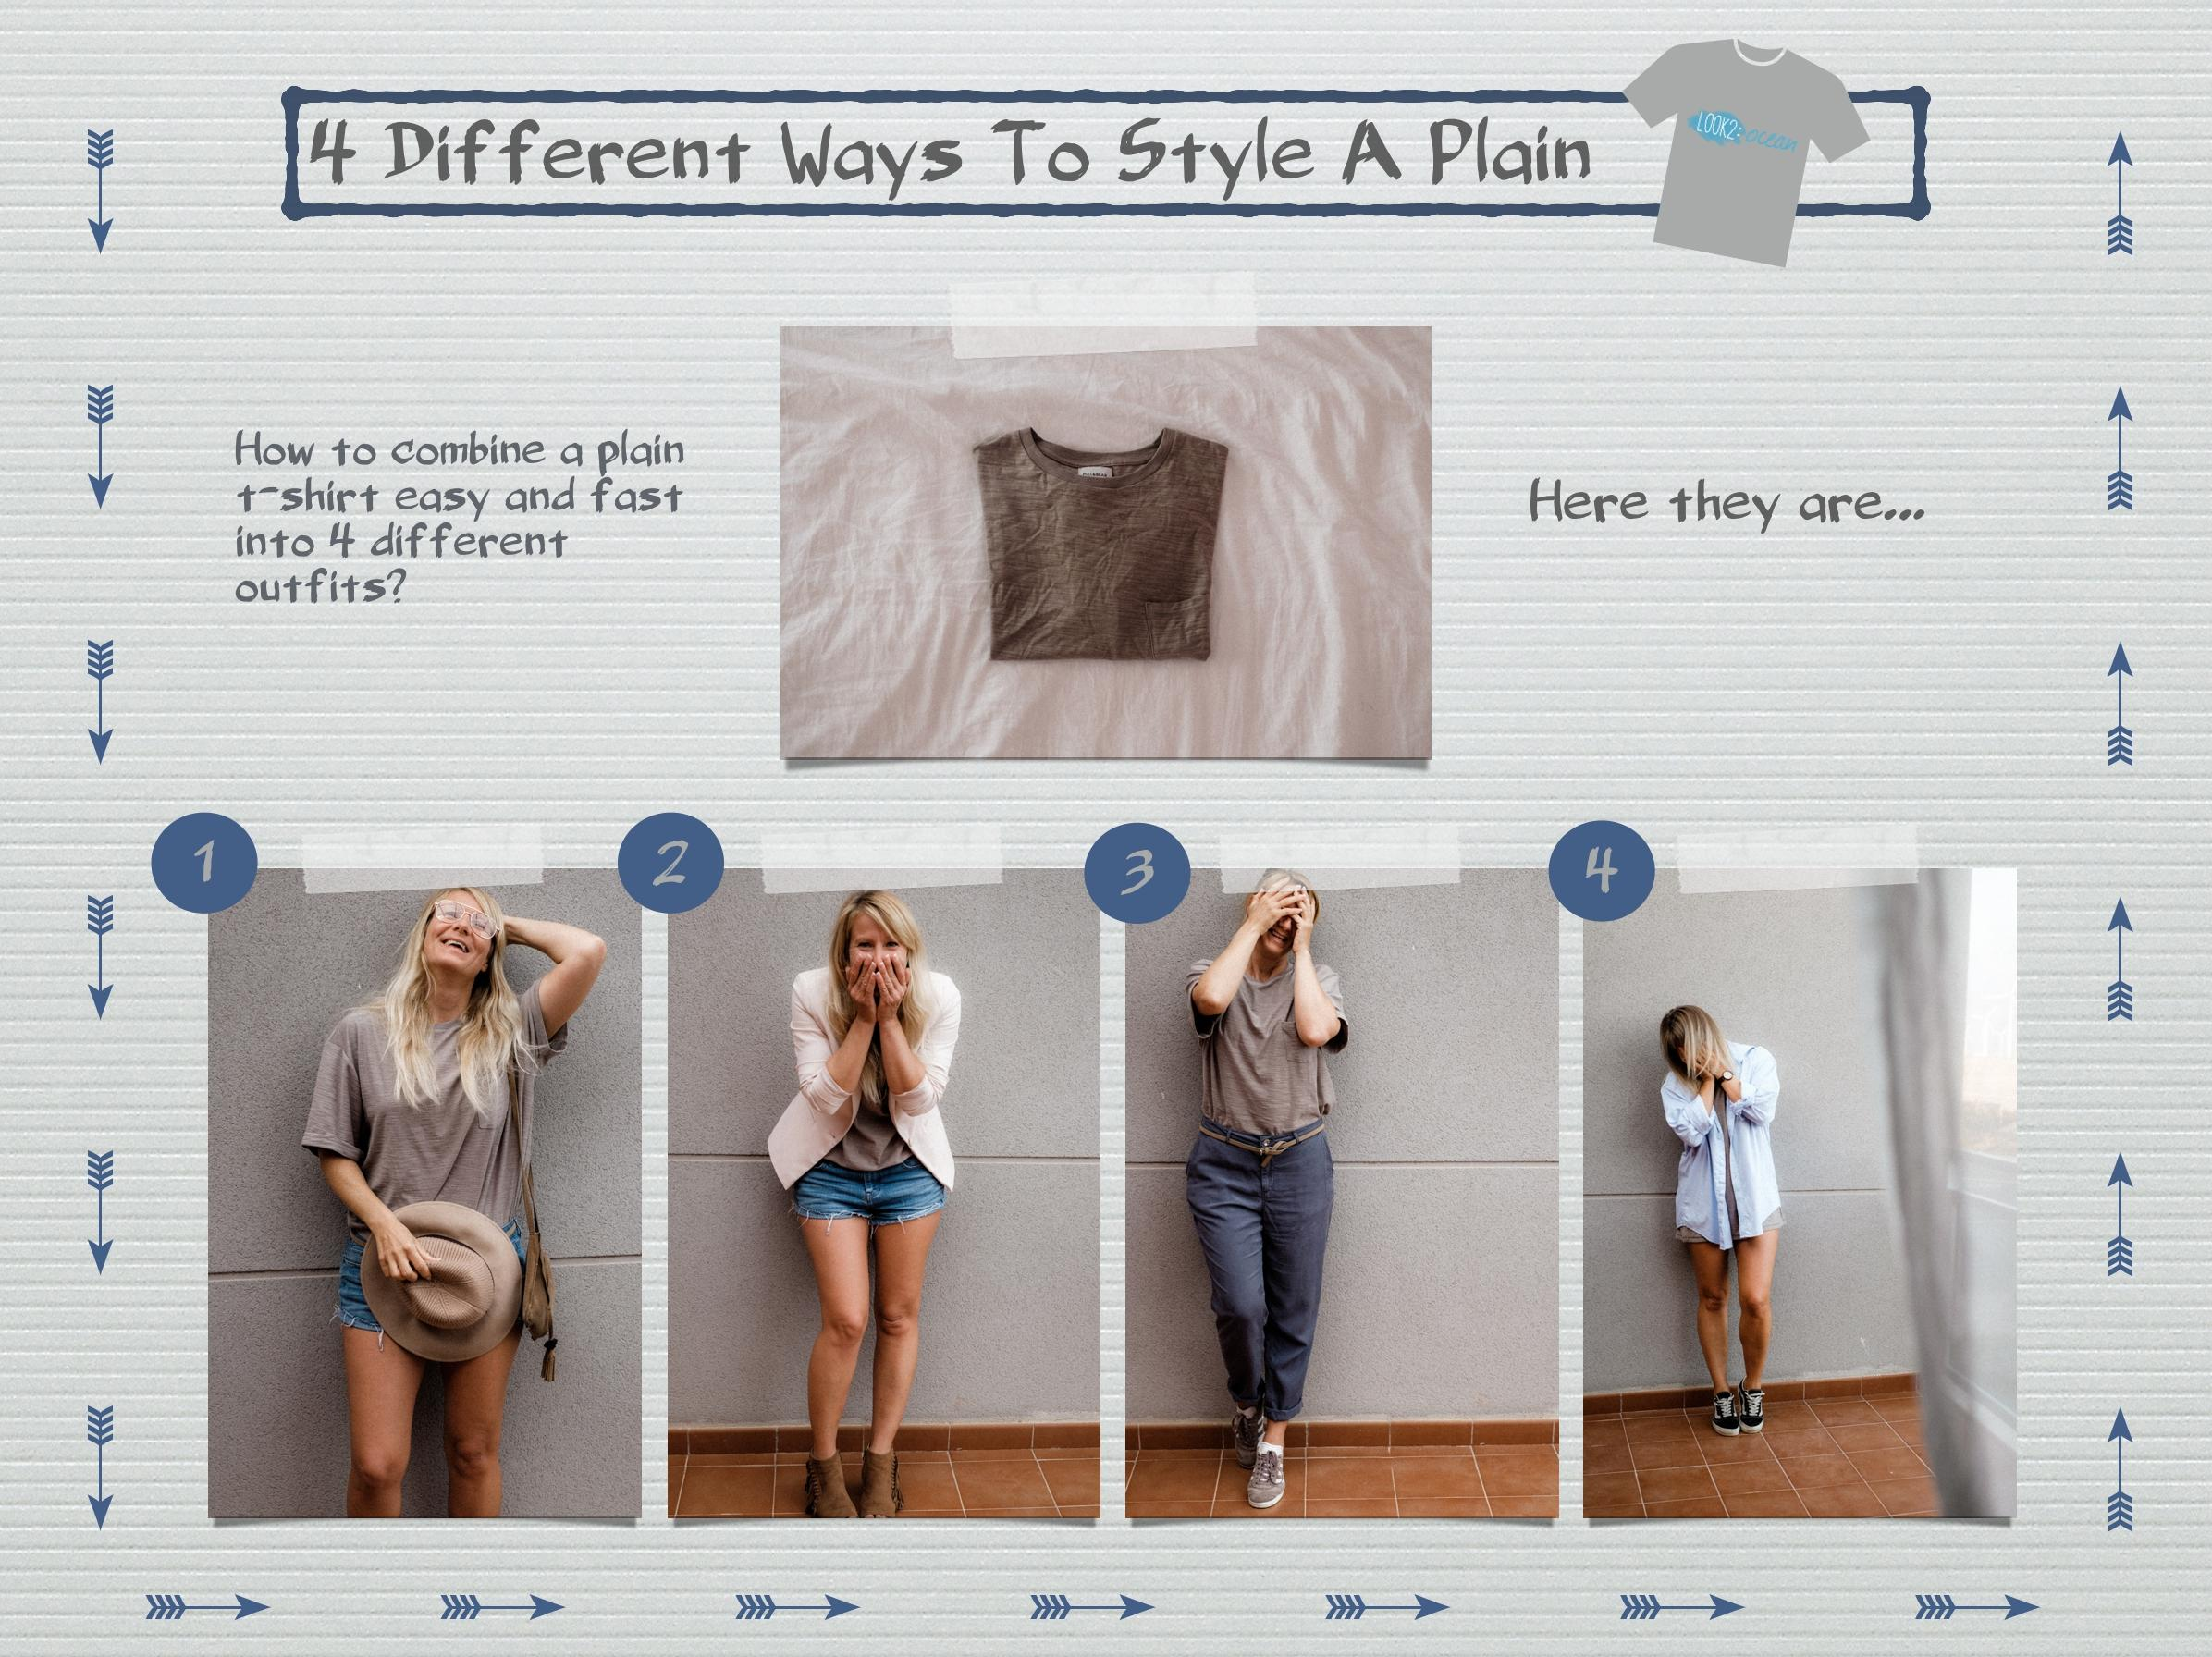 How to style... #plaintshirt #tshirt #outfit #look #differentways #strettstyle #casuallook #workuniform #ootd